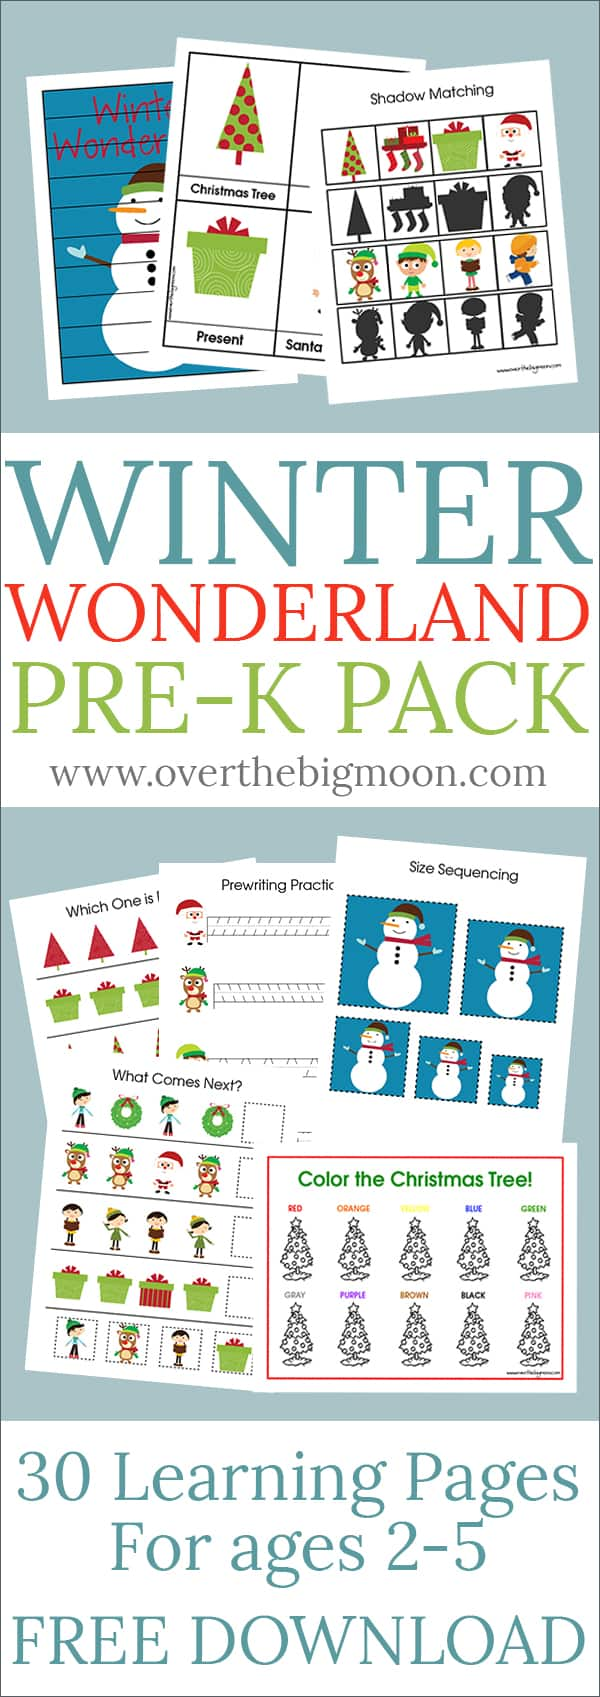 Winter Wonderland Pre-K Pack - Over the Big Moon